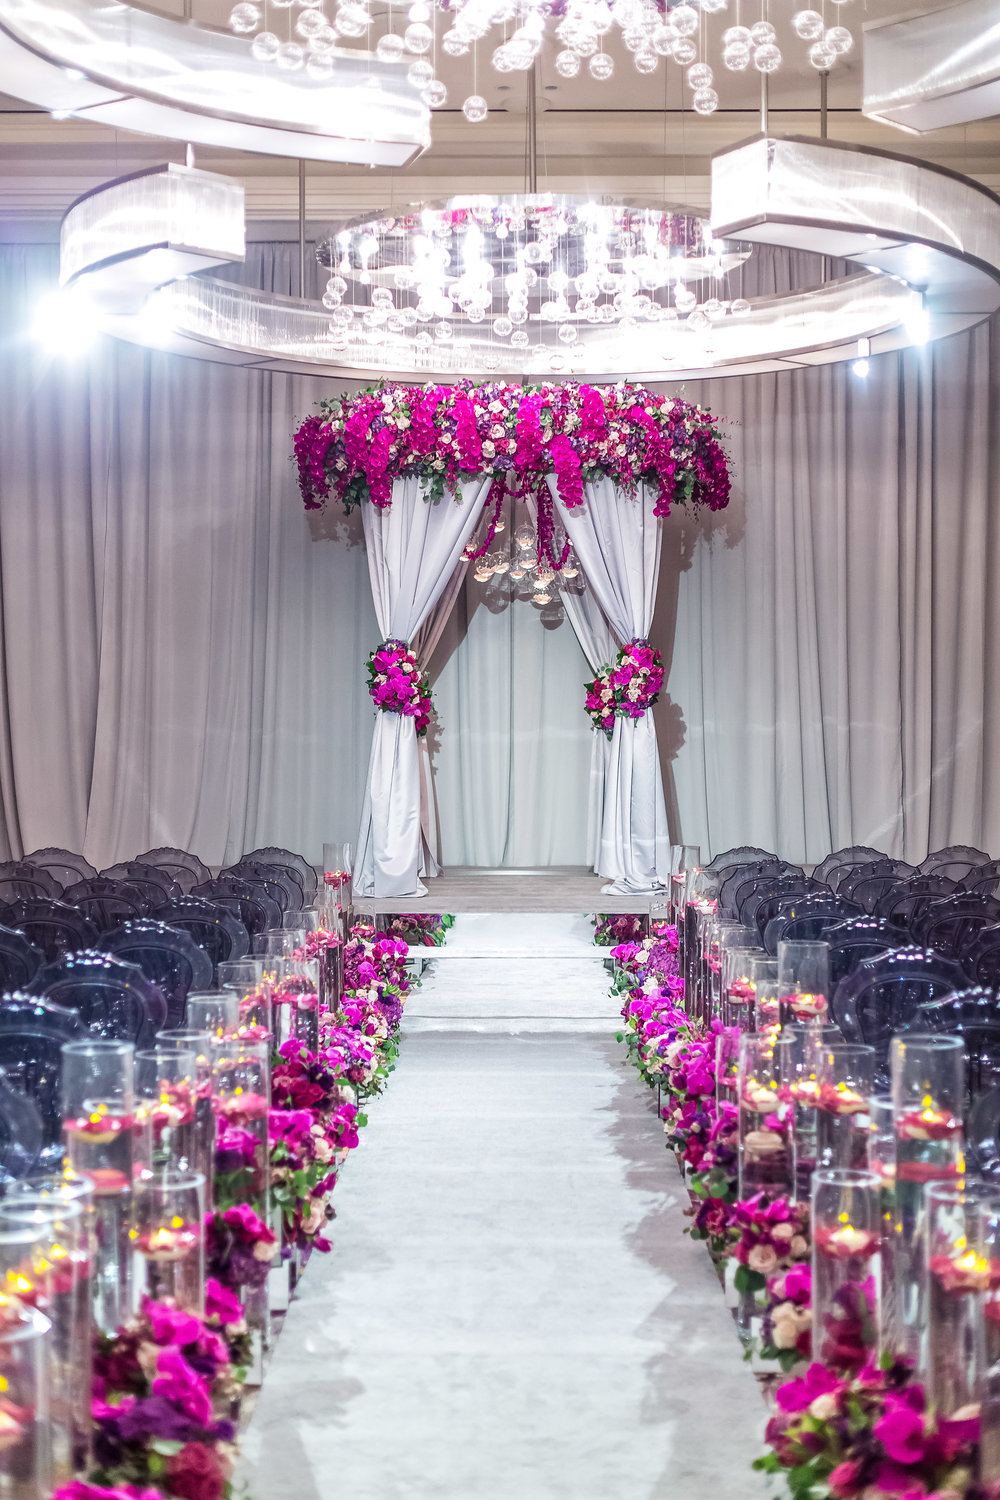 Fuchsia orchids and grey drapes created a beautiful wedding ceremony in Las Vegas.  As seen in Inside Weddings.  Wedding Planner:  Andrea Eppolito Events  |   Photography  Brian Leahy   |  Videography  HOO Films   |  Venue & Catering:  Mandarin Oriental  / Waldorf Astoria |  Floral & Decor:  Destinations by Design    |  Lighting:  LED Unplugged  |  Music:  DJ Breeze II   |  Hair & Make Up:  Amelia C & Co